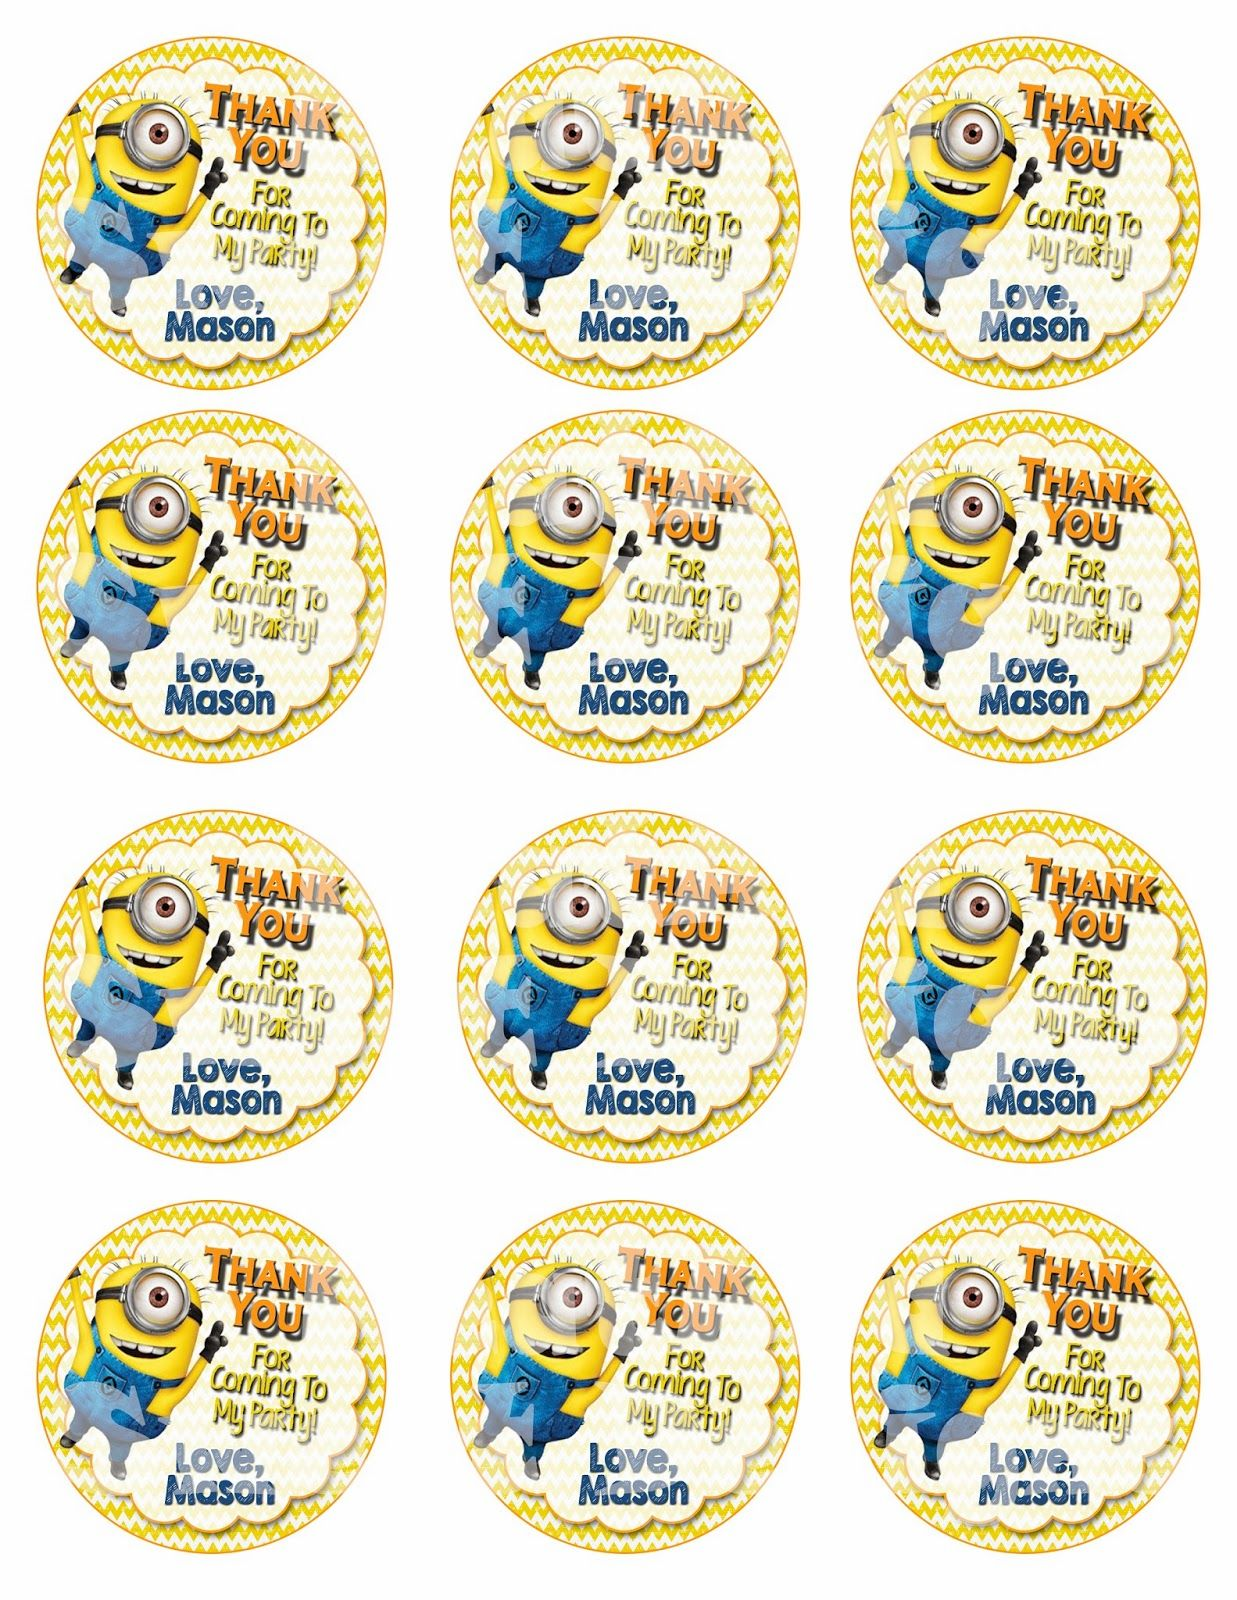 Despicable me minion birthday party a cup cake recipe party despicable me minion birthday party a cup cake recipe filmwisefo Gallery